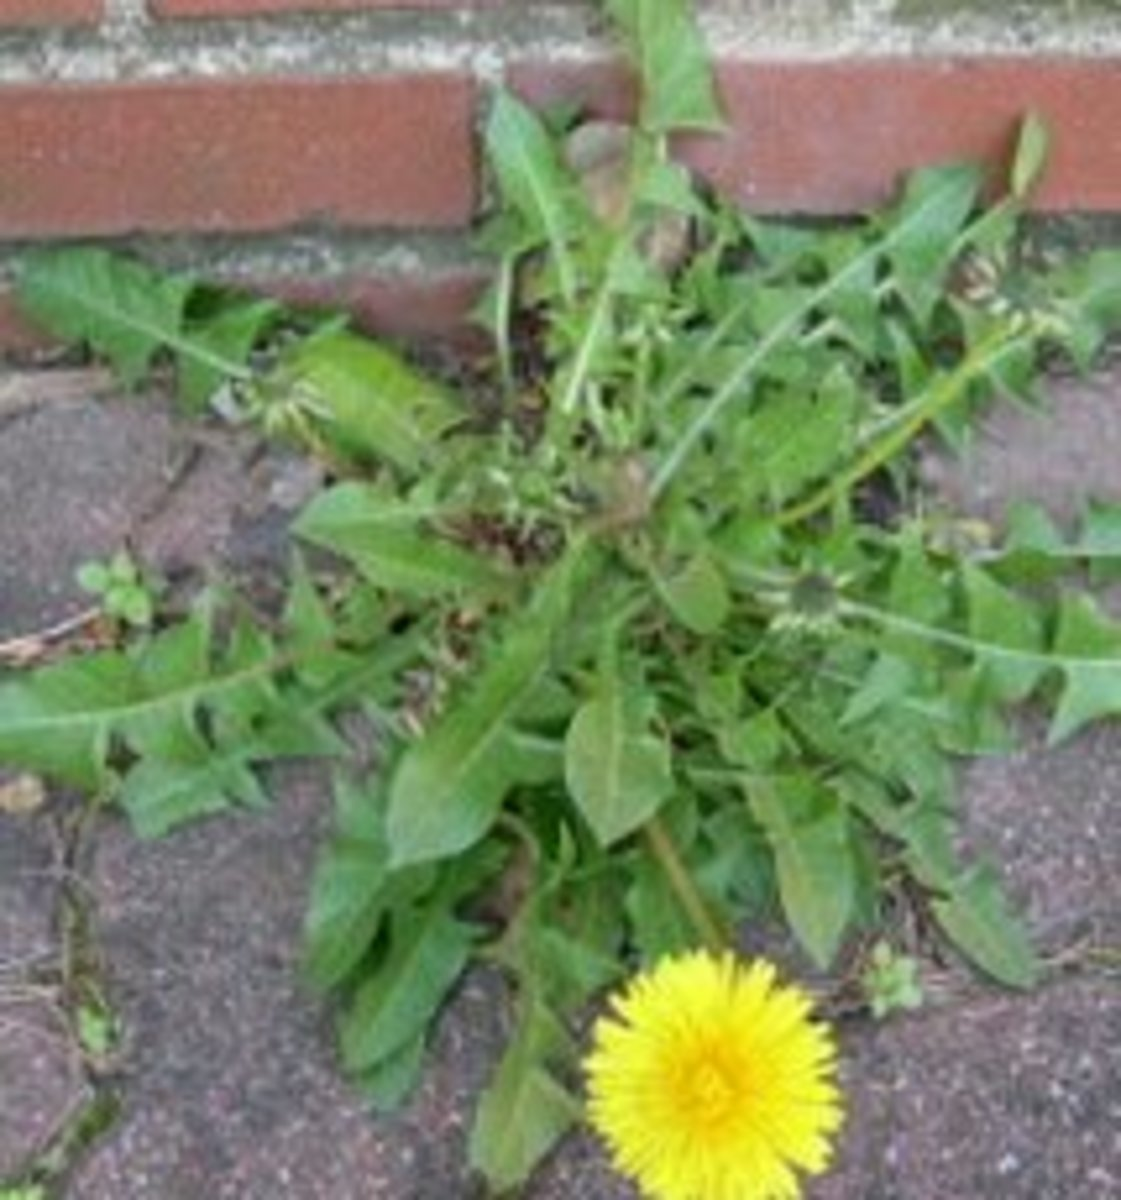 It's a good idea to try these survival plants before you're in an emergency situation, but be careful not to eat dandelions or other plants from from lawns or other areas that have been chemically treated.